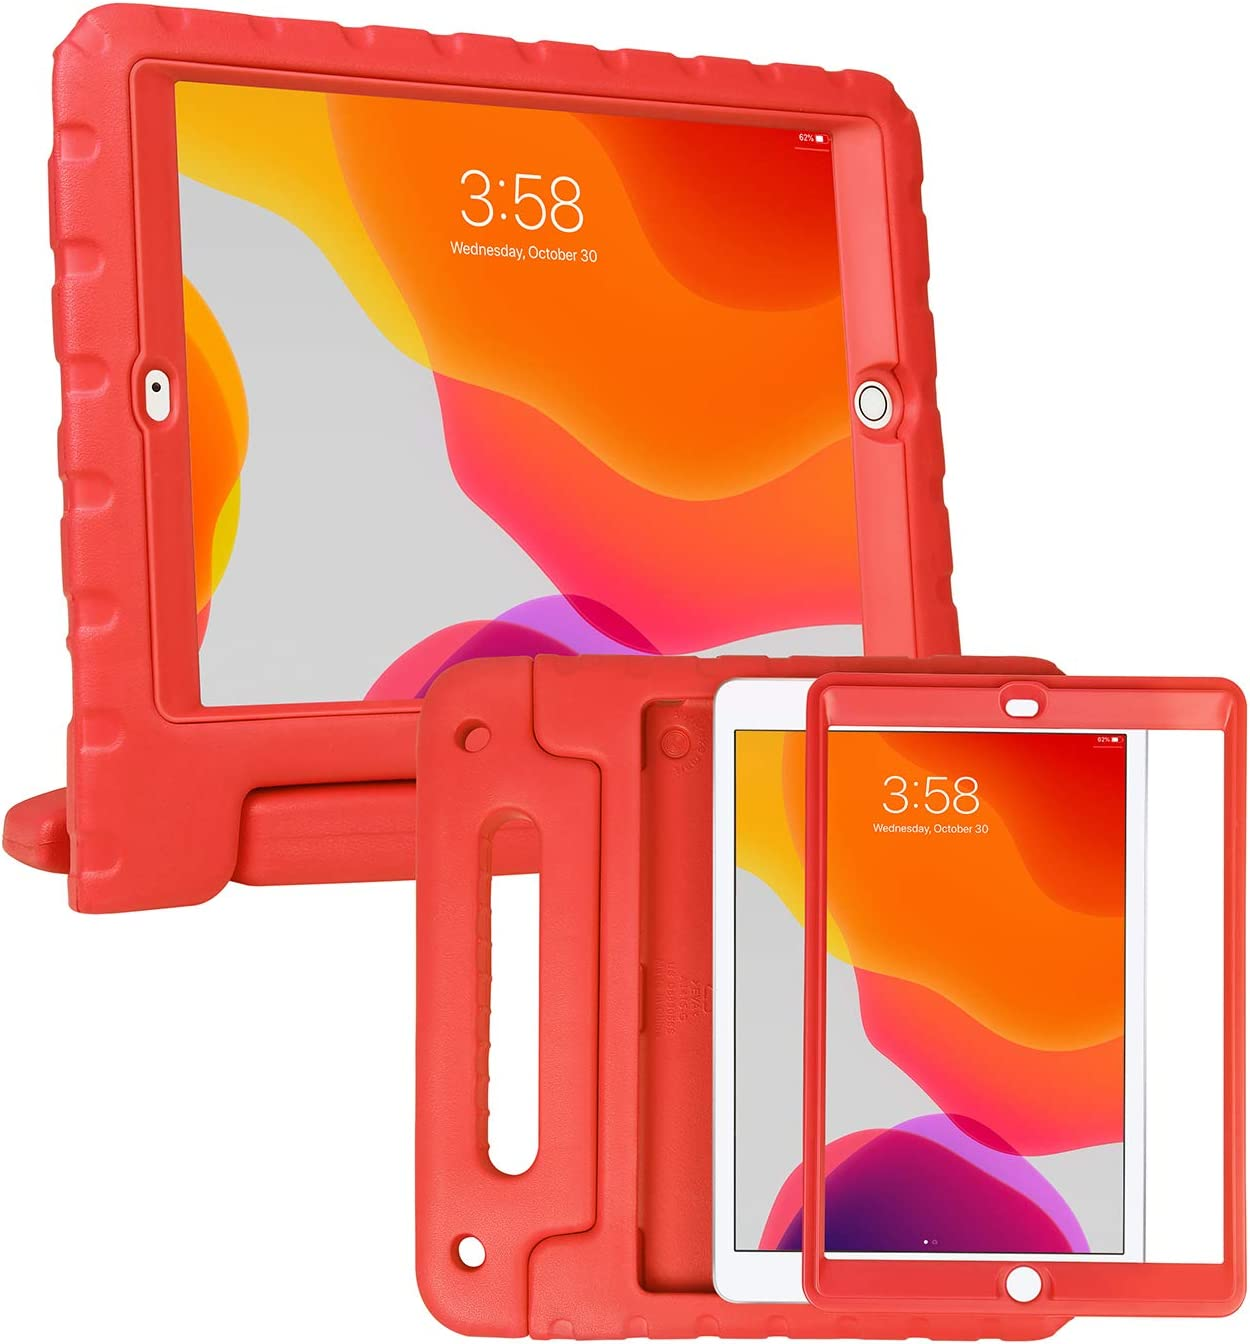 HDE iPad 7th Generation Case for Kids with Built-in Screen Protector – iPad 10.2 inch 2019 Case for Kids Shock Proof Protective Heavy Duty Cover with Handle Stand for 2019 Apple iPad 10.2 - Red